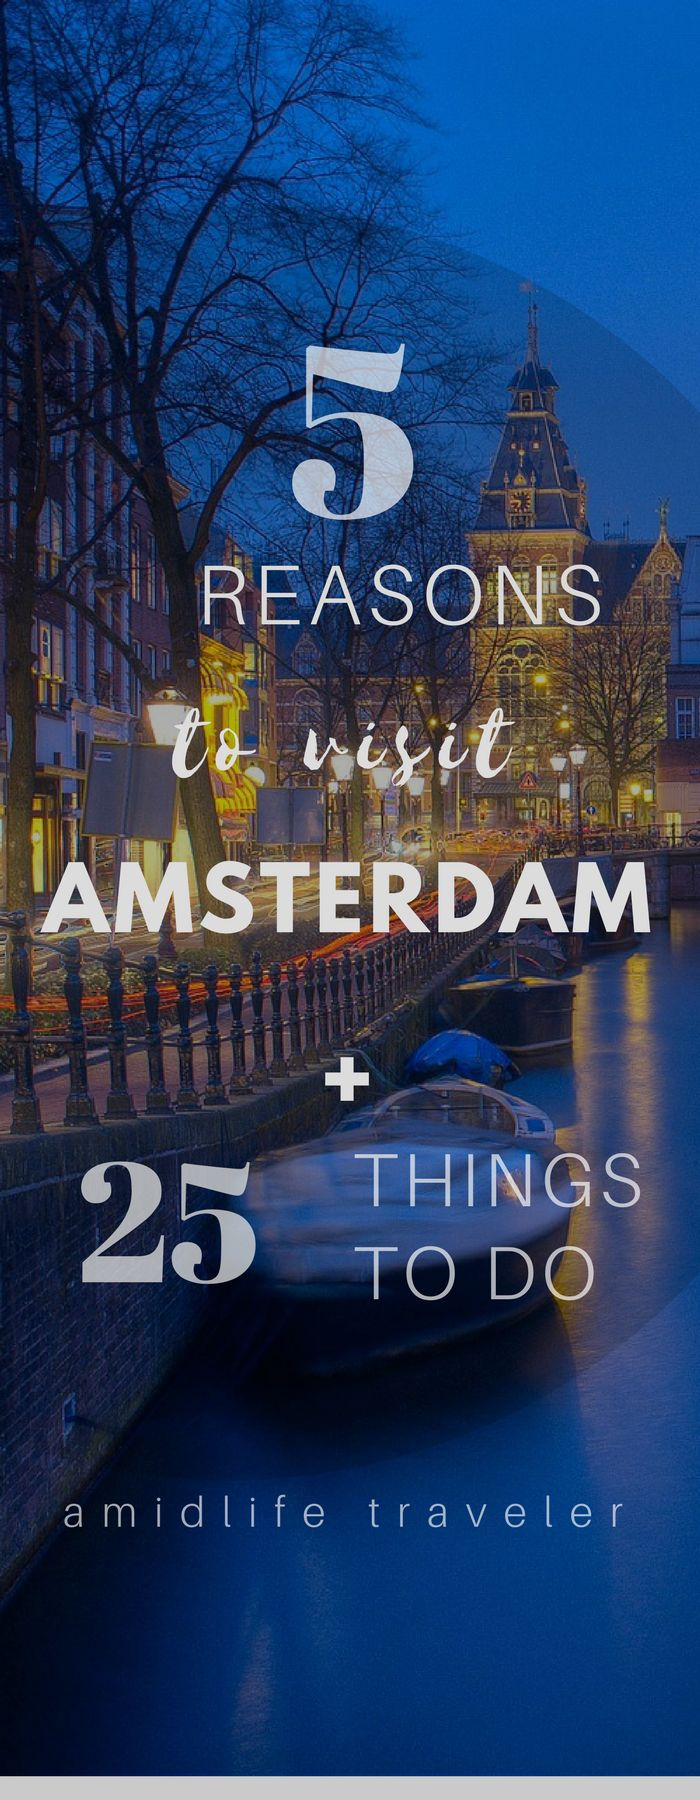 Thinking about a trip to AMSTERDAM or elsewhere in THE NETHERLANDS?  You should, it is a fantastic vacation destination. But sorting through all of the options on the internet can be overwhelming. That's why we've curated this list of great things to see and do to help people discover Amsterdam and the Netherlands for an easy Europe vacation planning resource.  Museum tickets, barge tours, castle tours - helping you plan your European vacation in the Netherlands.